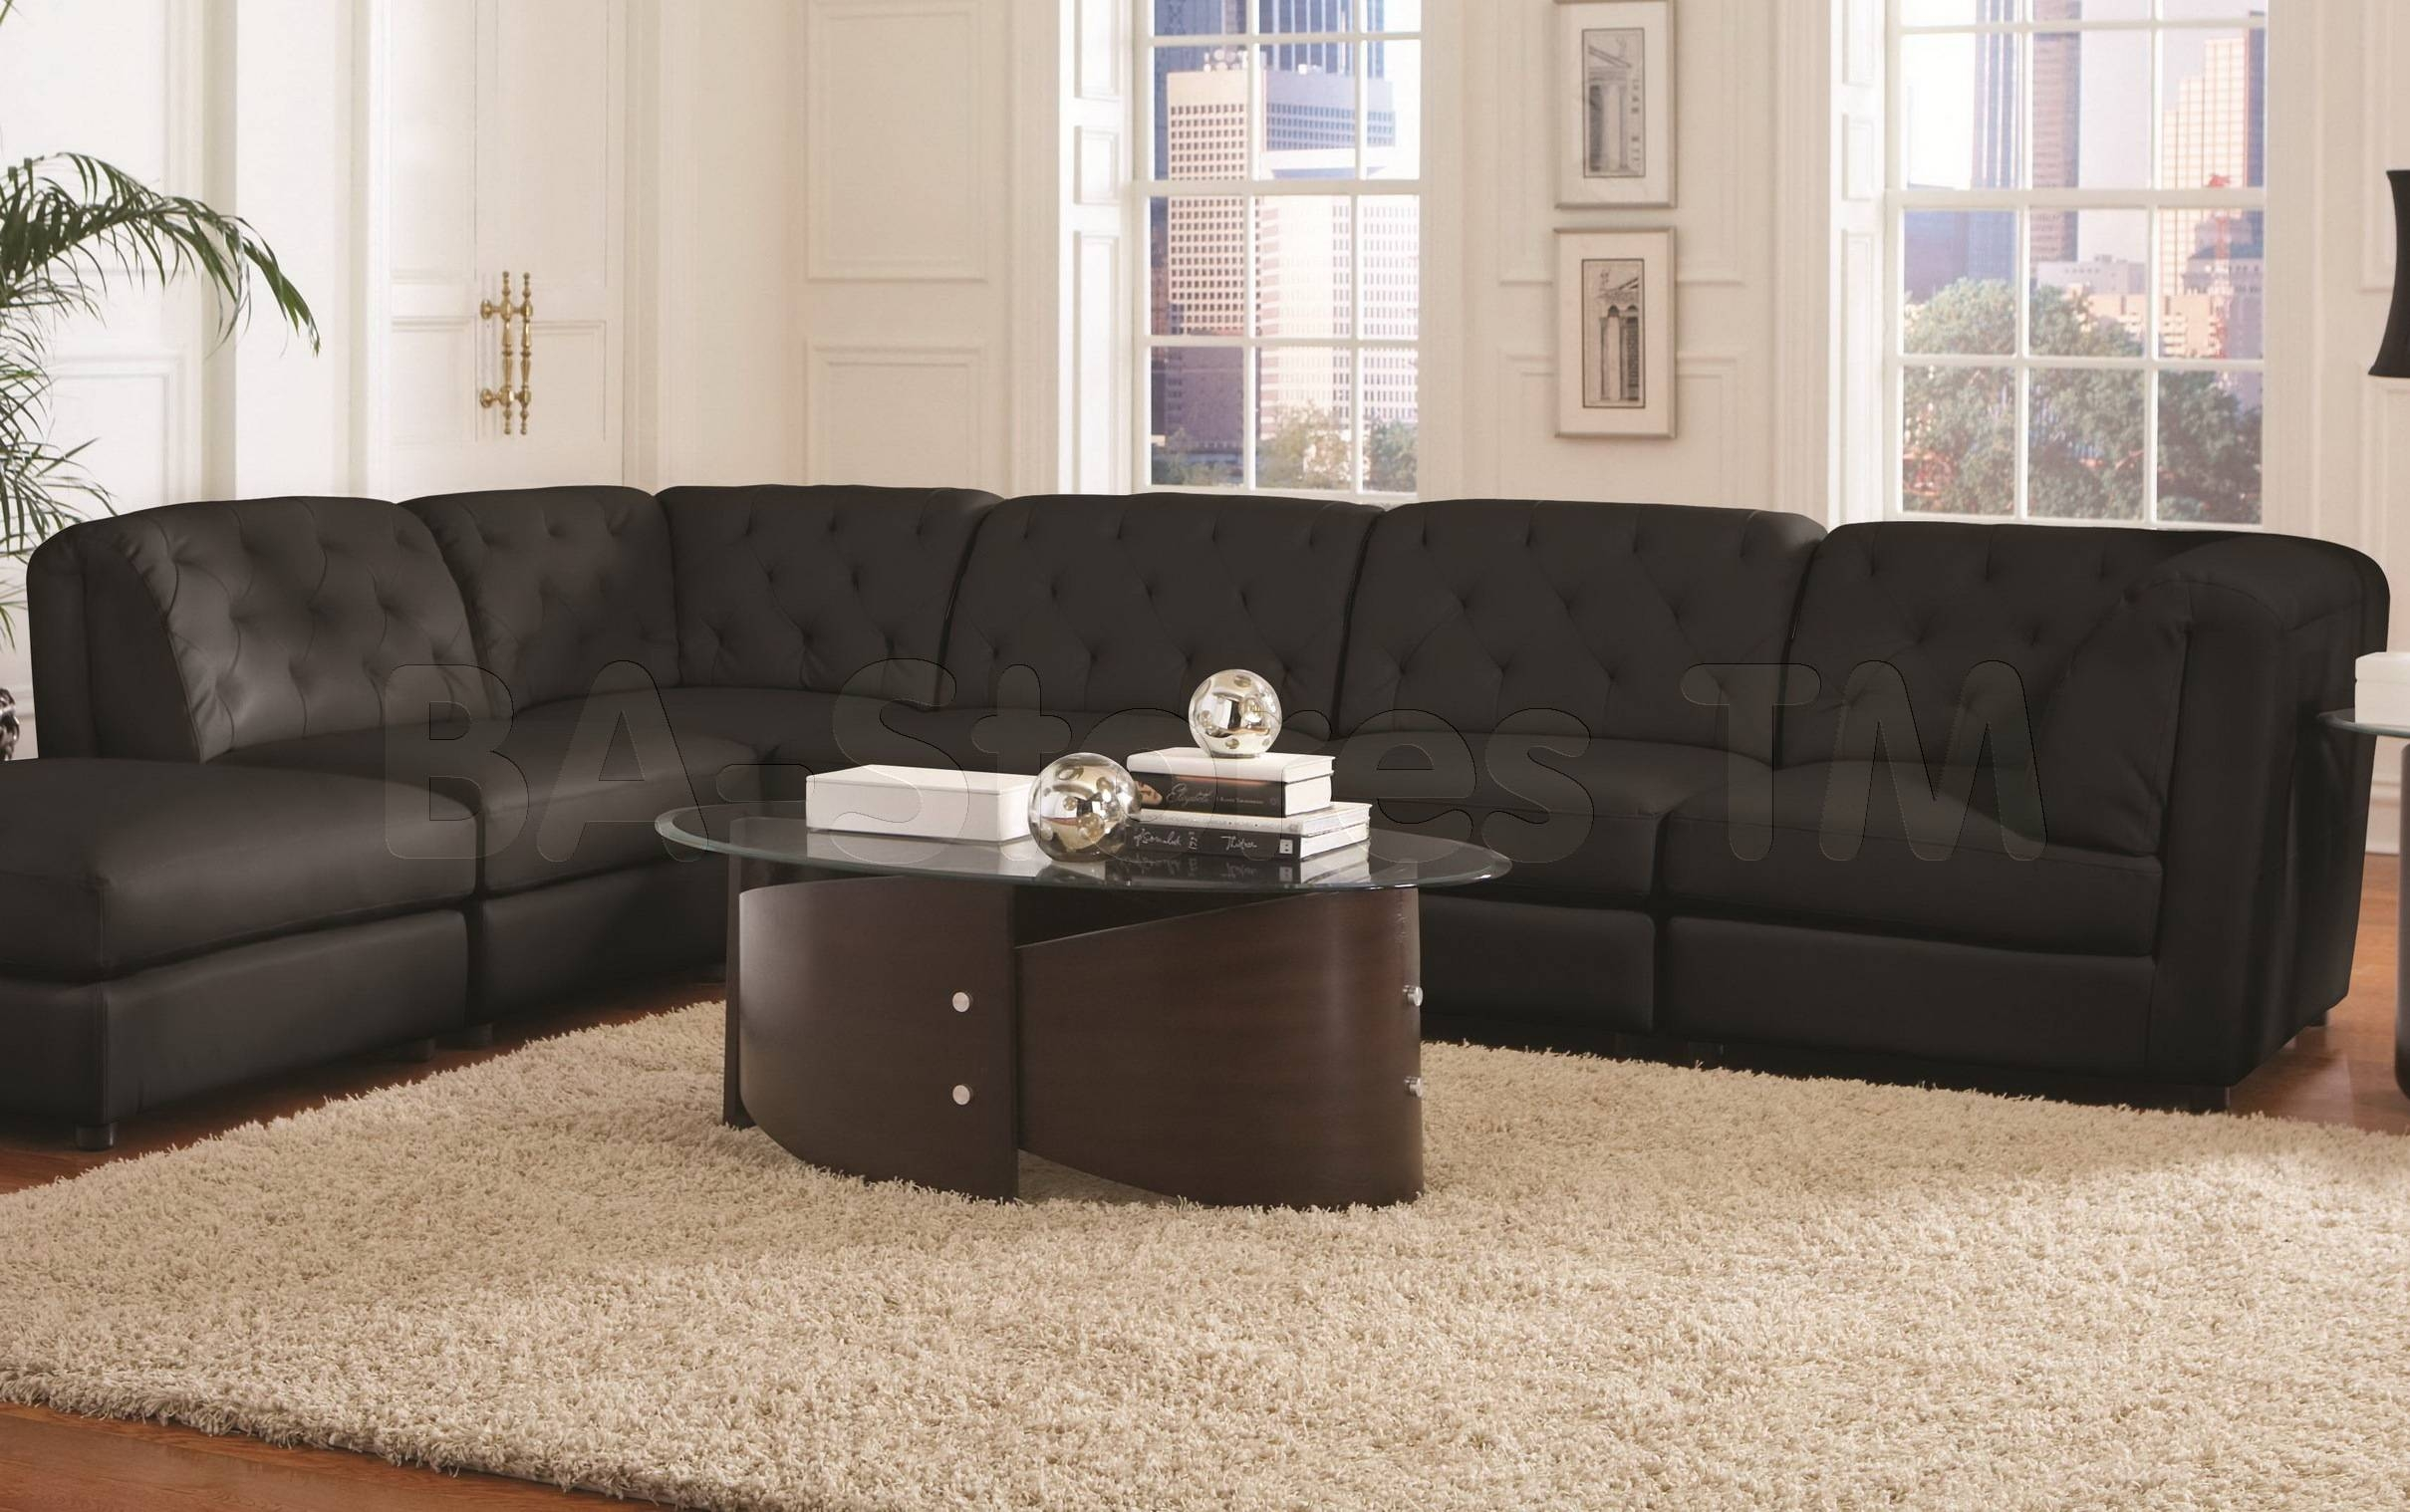 Leather And Suede Sectional Sofa - Leather Sectional Sofa inside Leather and Suede Sectional Sofa (Image 19 of 25)